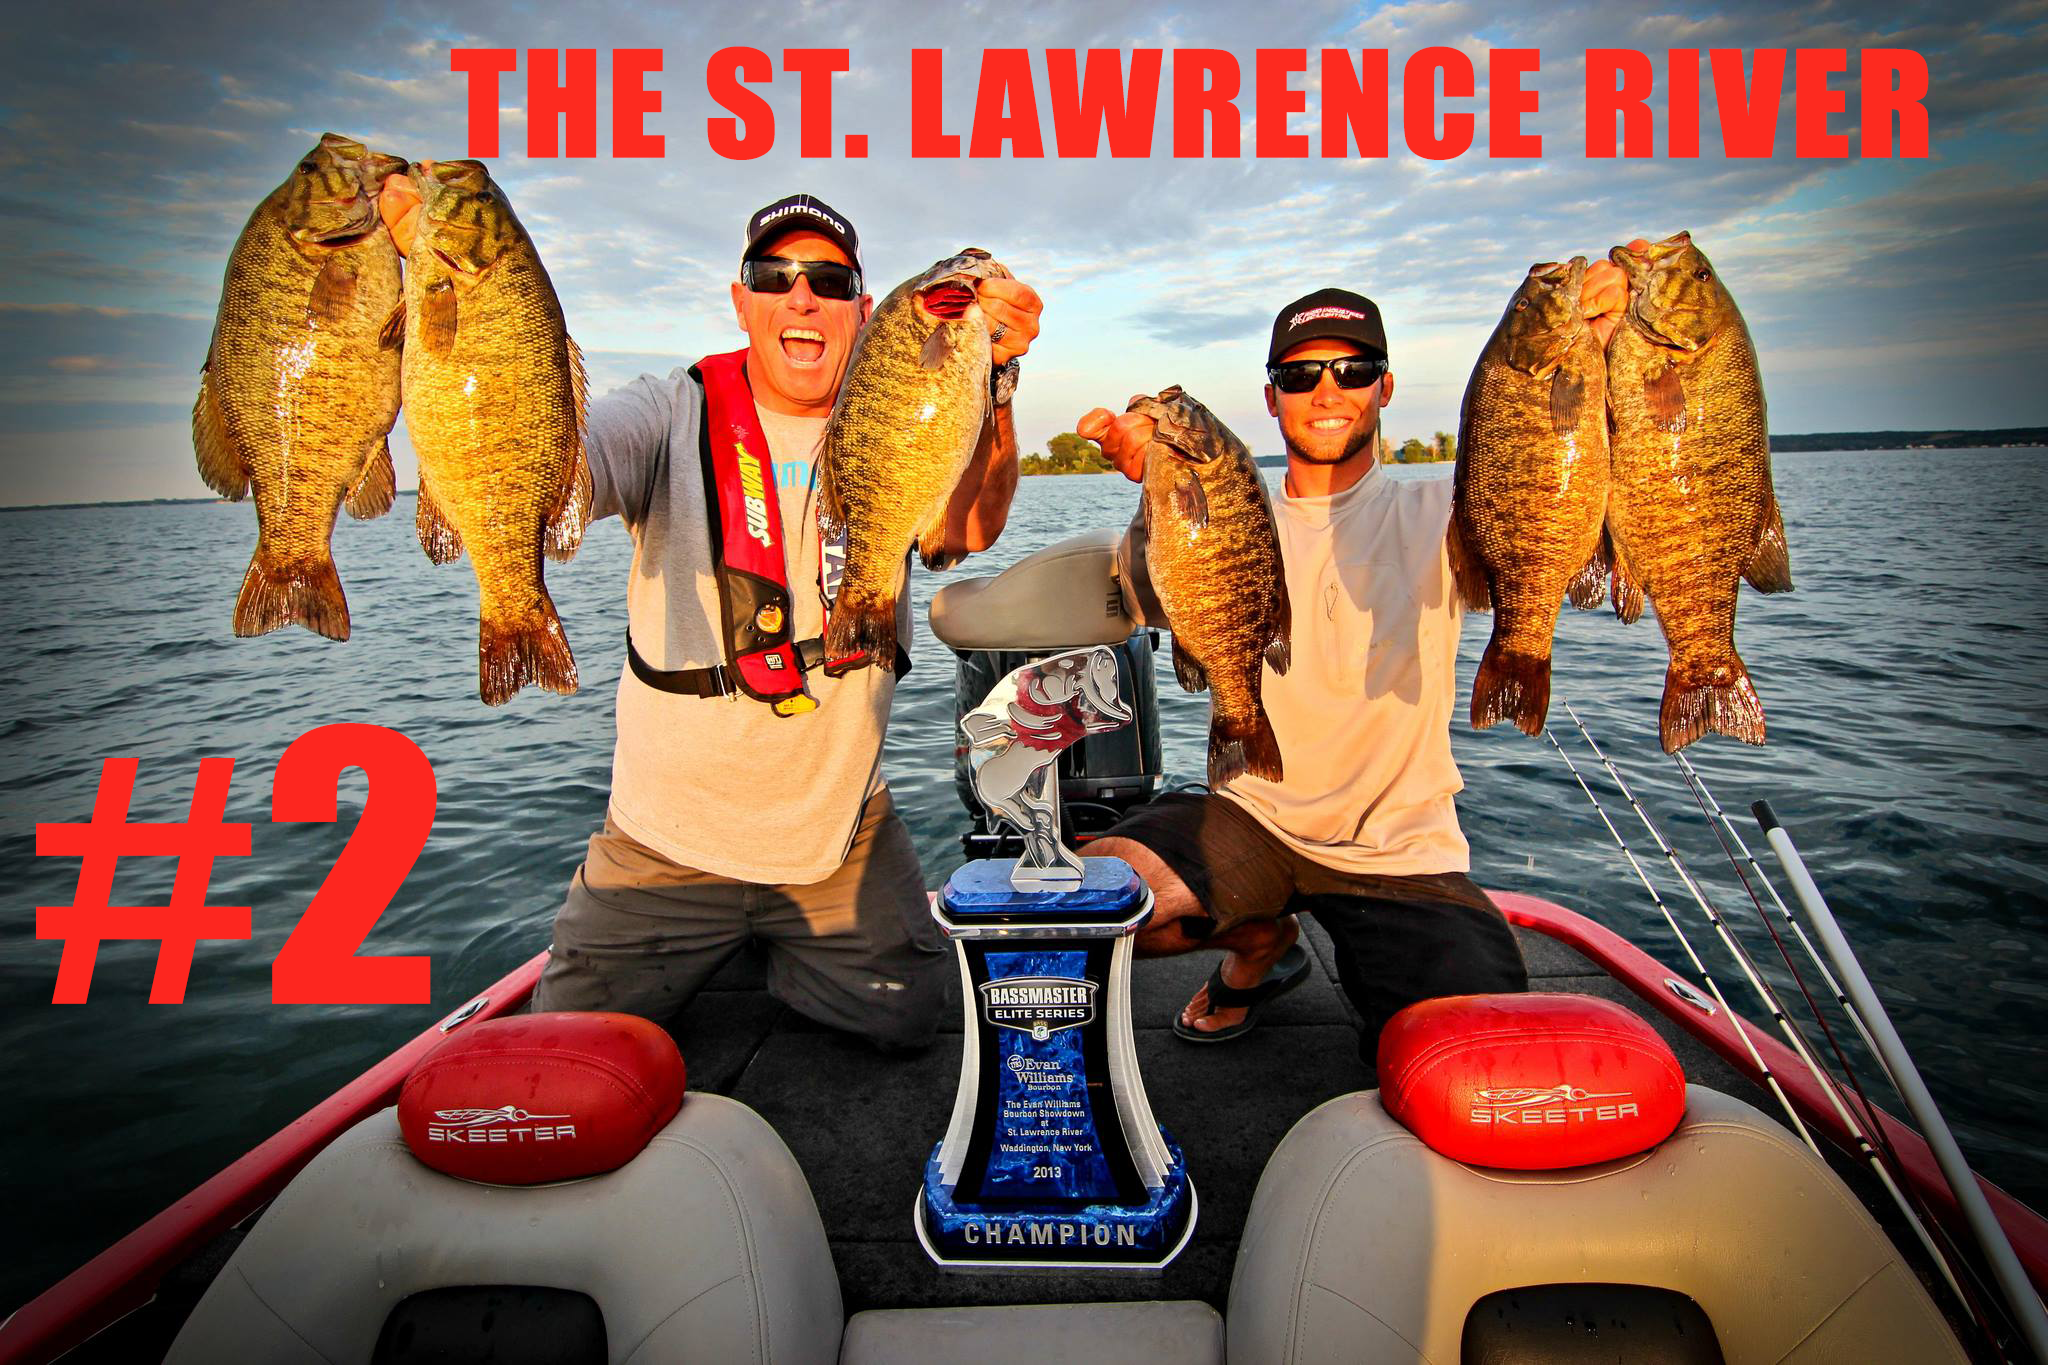 summer bass fishing, dave mercer, brandon palaniuk, smallmouth bass, st. lawrence river, clayton ny, ogdensburg, bass elite series, facts of fishing, bp fishing